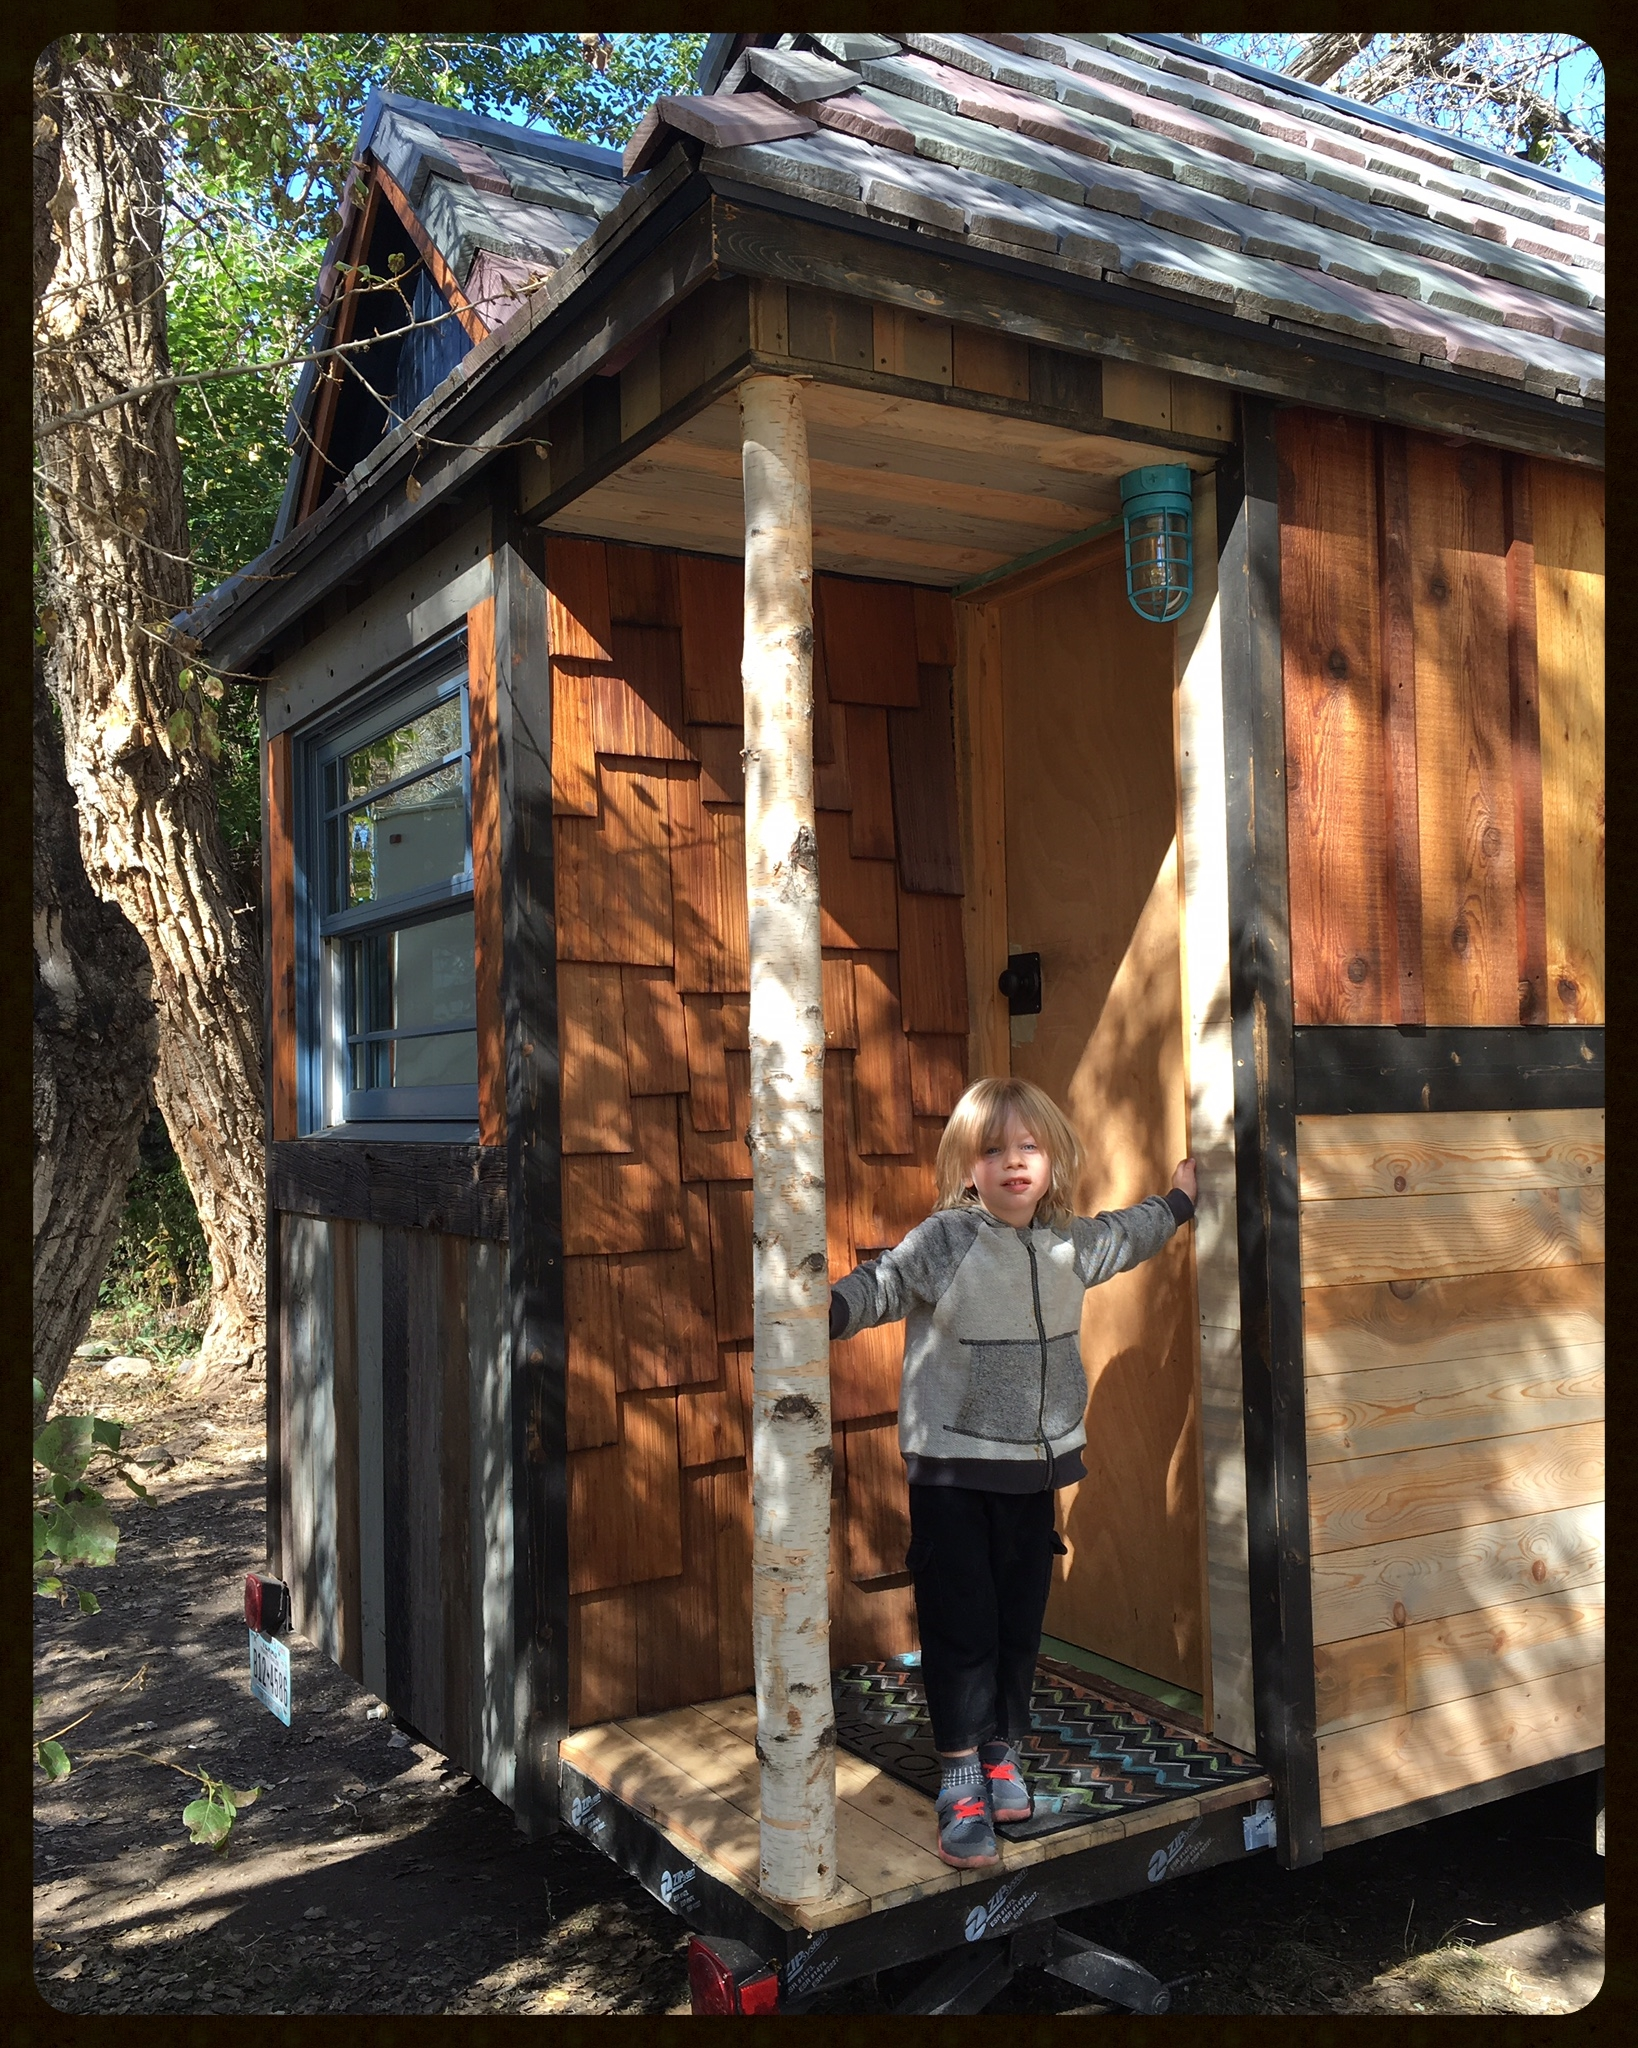 R.A.D posing on the porch at our winter parking spot in Loveland, Colorado. The front door is just temporary and there's more porch trim to complete, but we had fun figuring out the final organizational details inside to make life comfortable in 172sqft plus the loft!<3